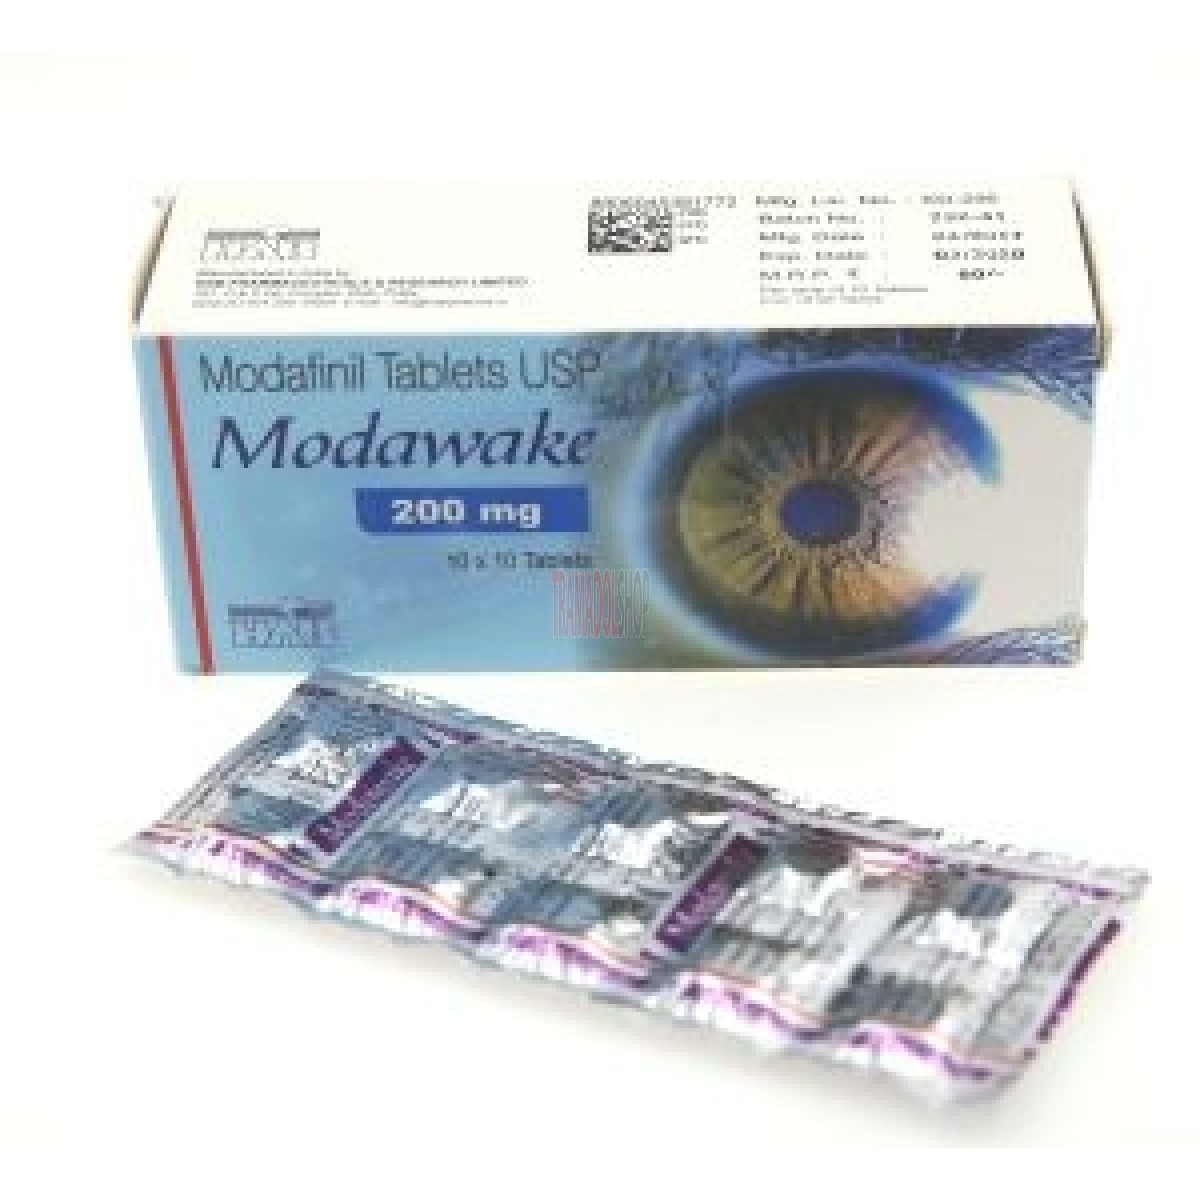 Buy Modawake 200mg (Modafinil) Online in USA at best Rate   Buy Now ▶